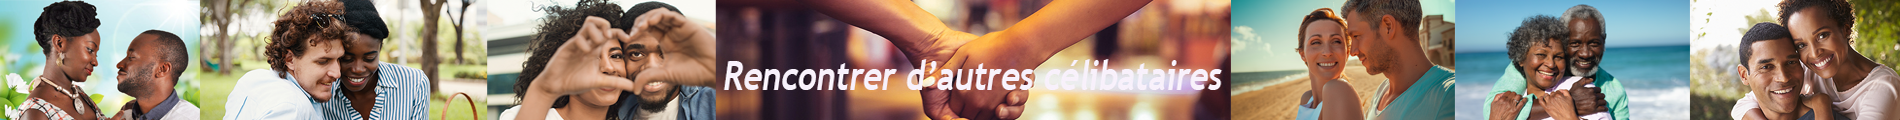 entete-rencontre-speeddating-Guadeloupe